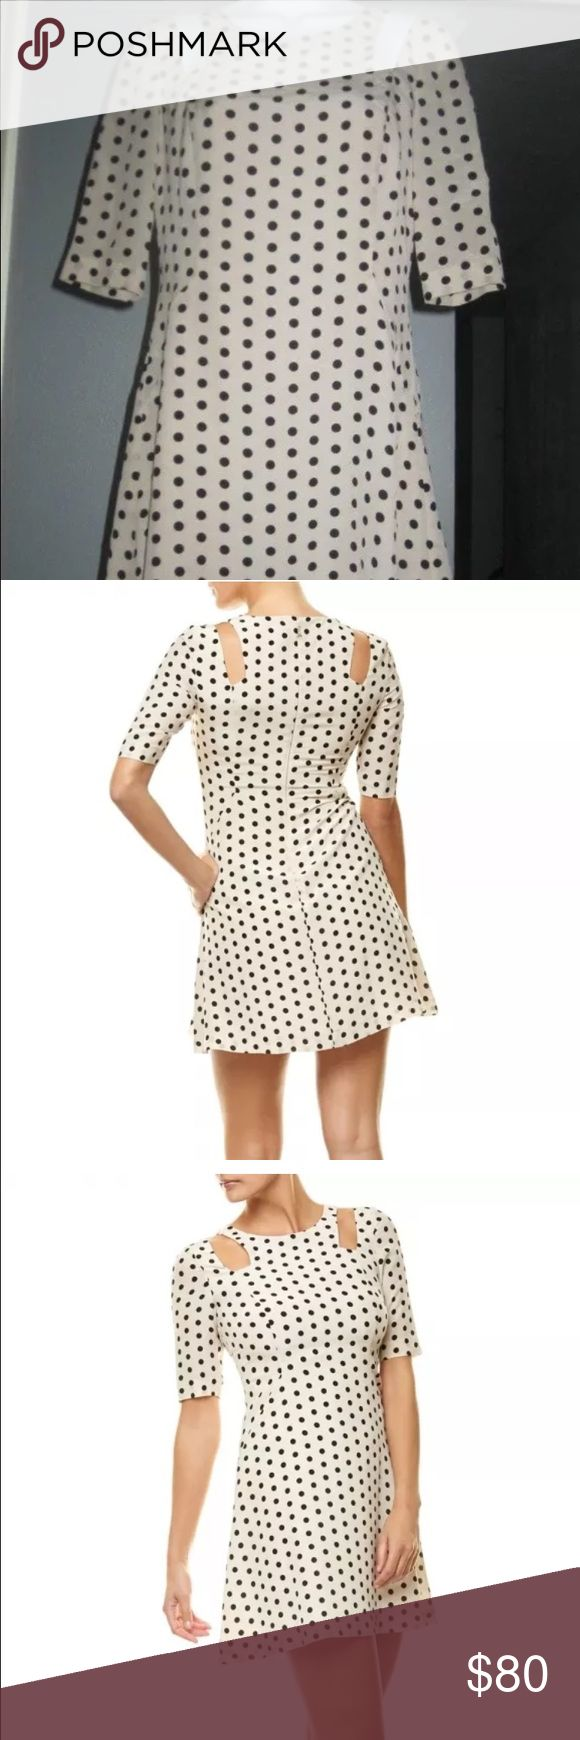 """Patrizia Pepe Polka Dot Dress Cold Shoulder Sz 6 Patrizia Pepe Polka Dot Tan and Black Silk Dress Cold Shoulder Sz US6 IT42 Creme and black Patrizia Pepe sleeveless dress with scoop neck, short sleeves featuring cutout shoulders, polka dot print throughout and concealed zip closure at back.DETAILS:  Shell: 100% Silk; Lining: 100% Polyester   Estimated Retail: $260.00 Condition: Pristine Fabric: 100% Silk Measurements: Bust 36"""", Waist 30"""", Hip 37"""", Length 33"""" Designer: Patrizia Pepe Patrizia…"""